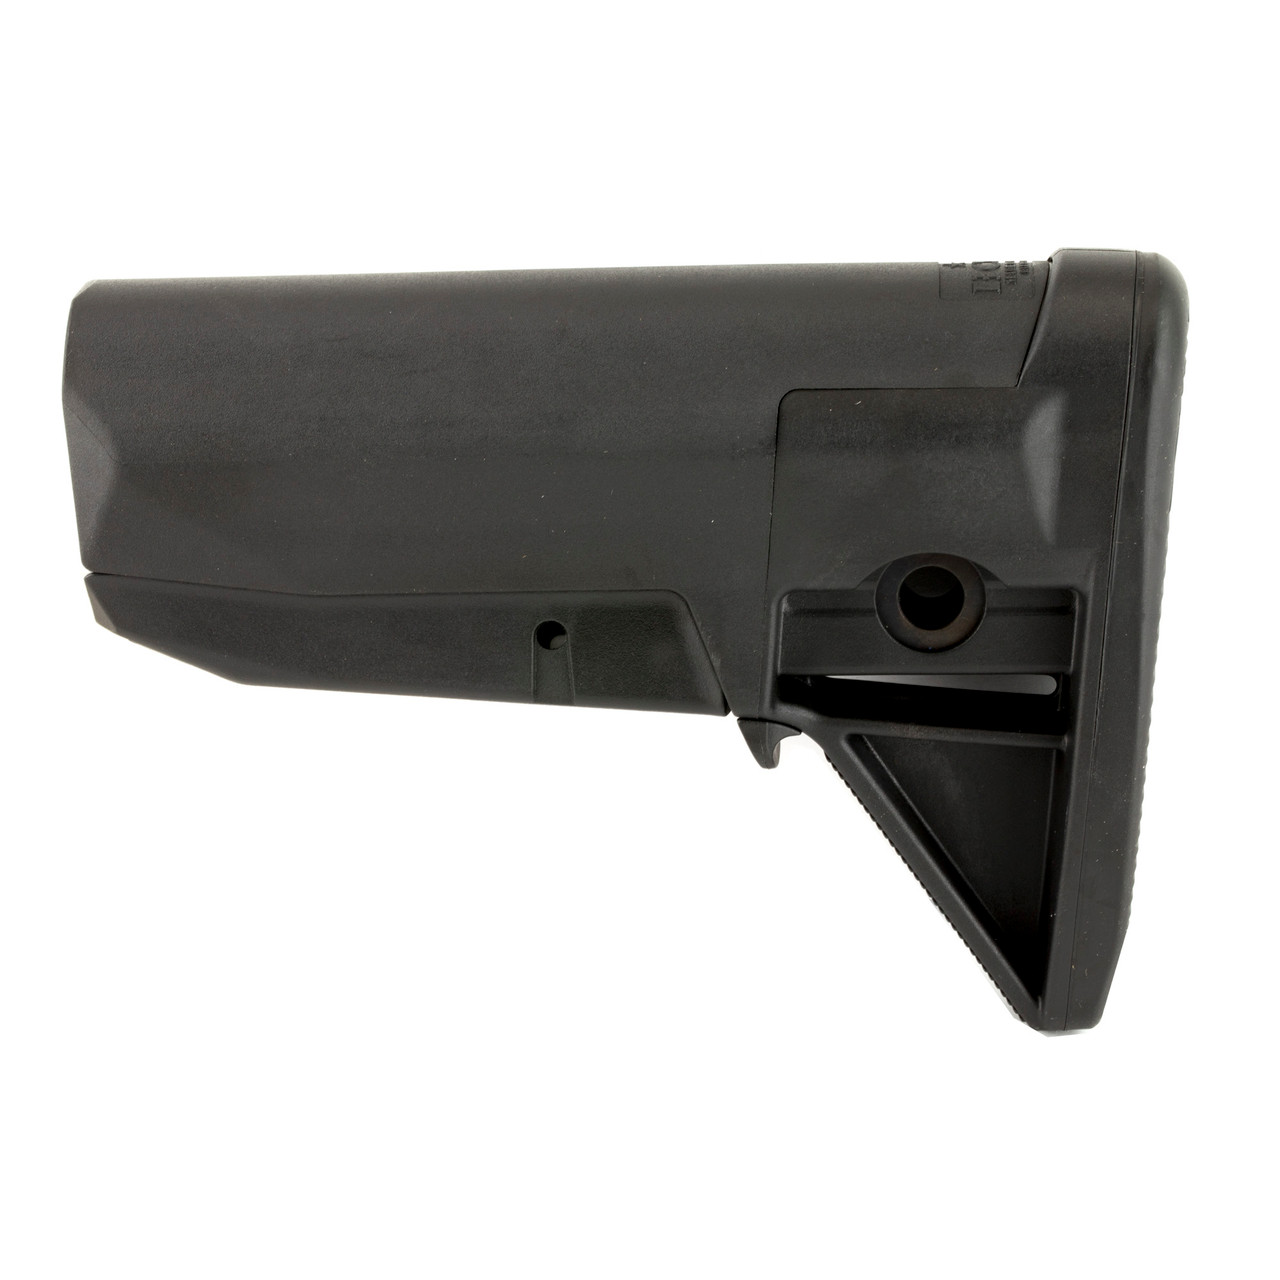 BCMGUNFIGHTER™ Stock - Mod 0 - Black